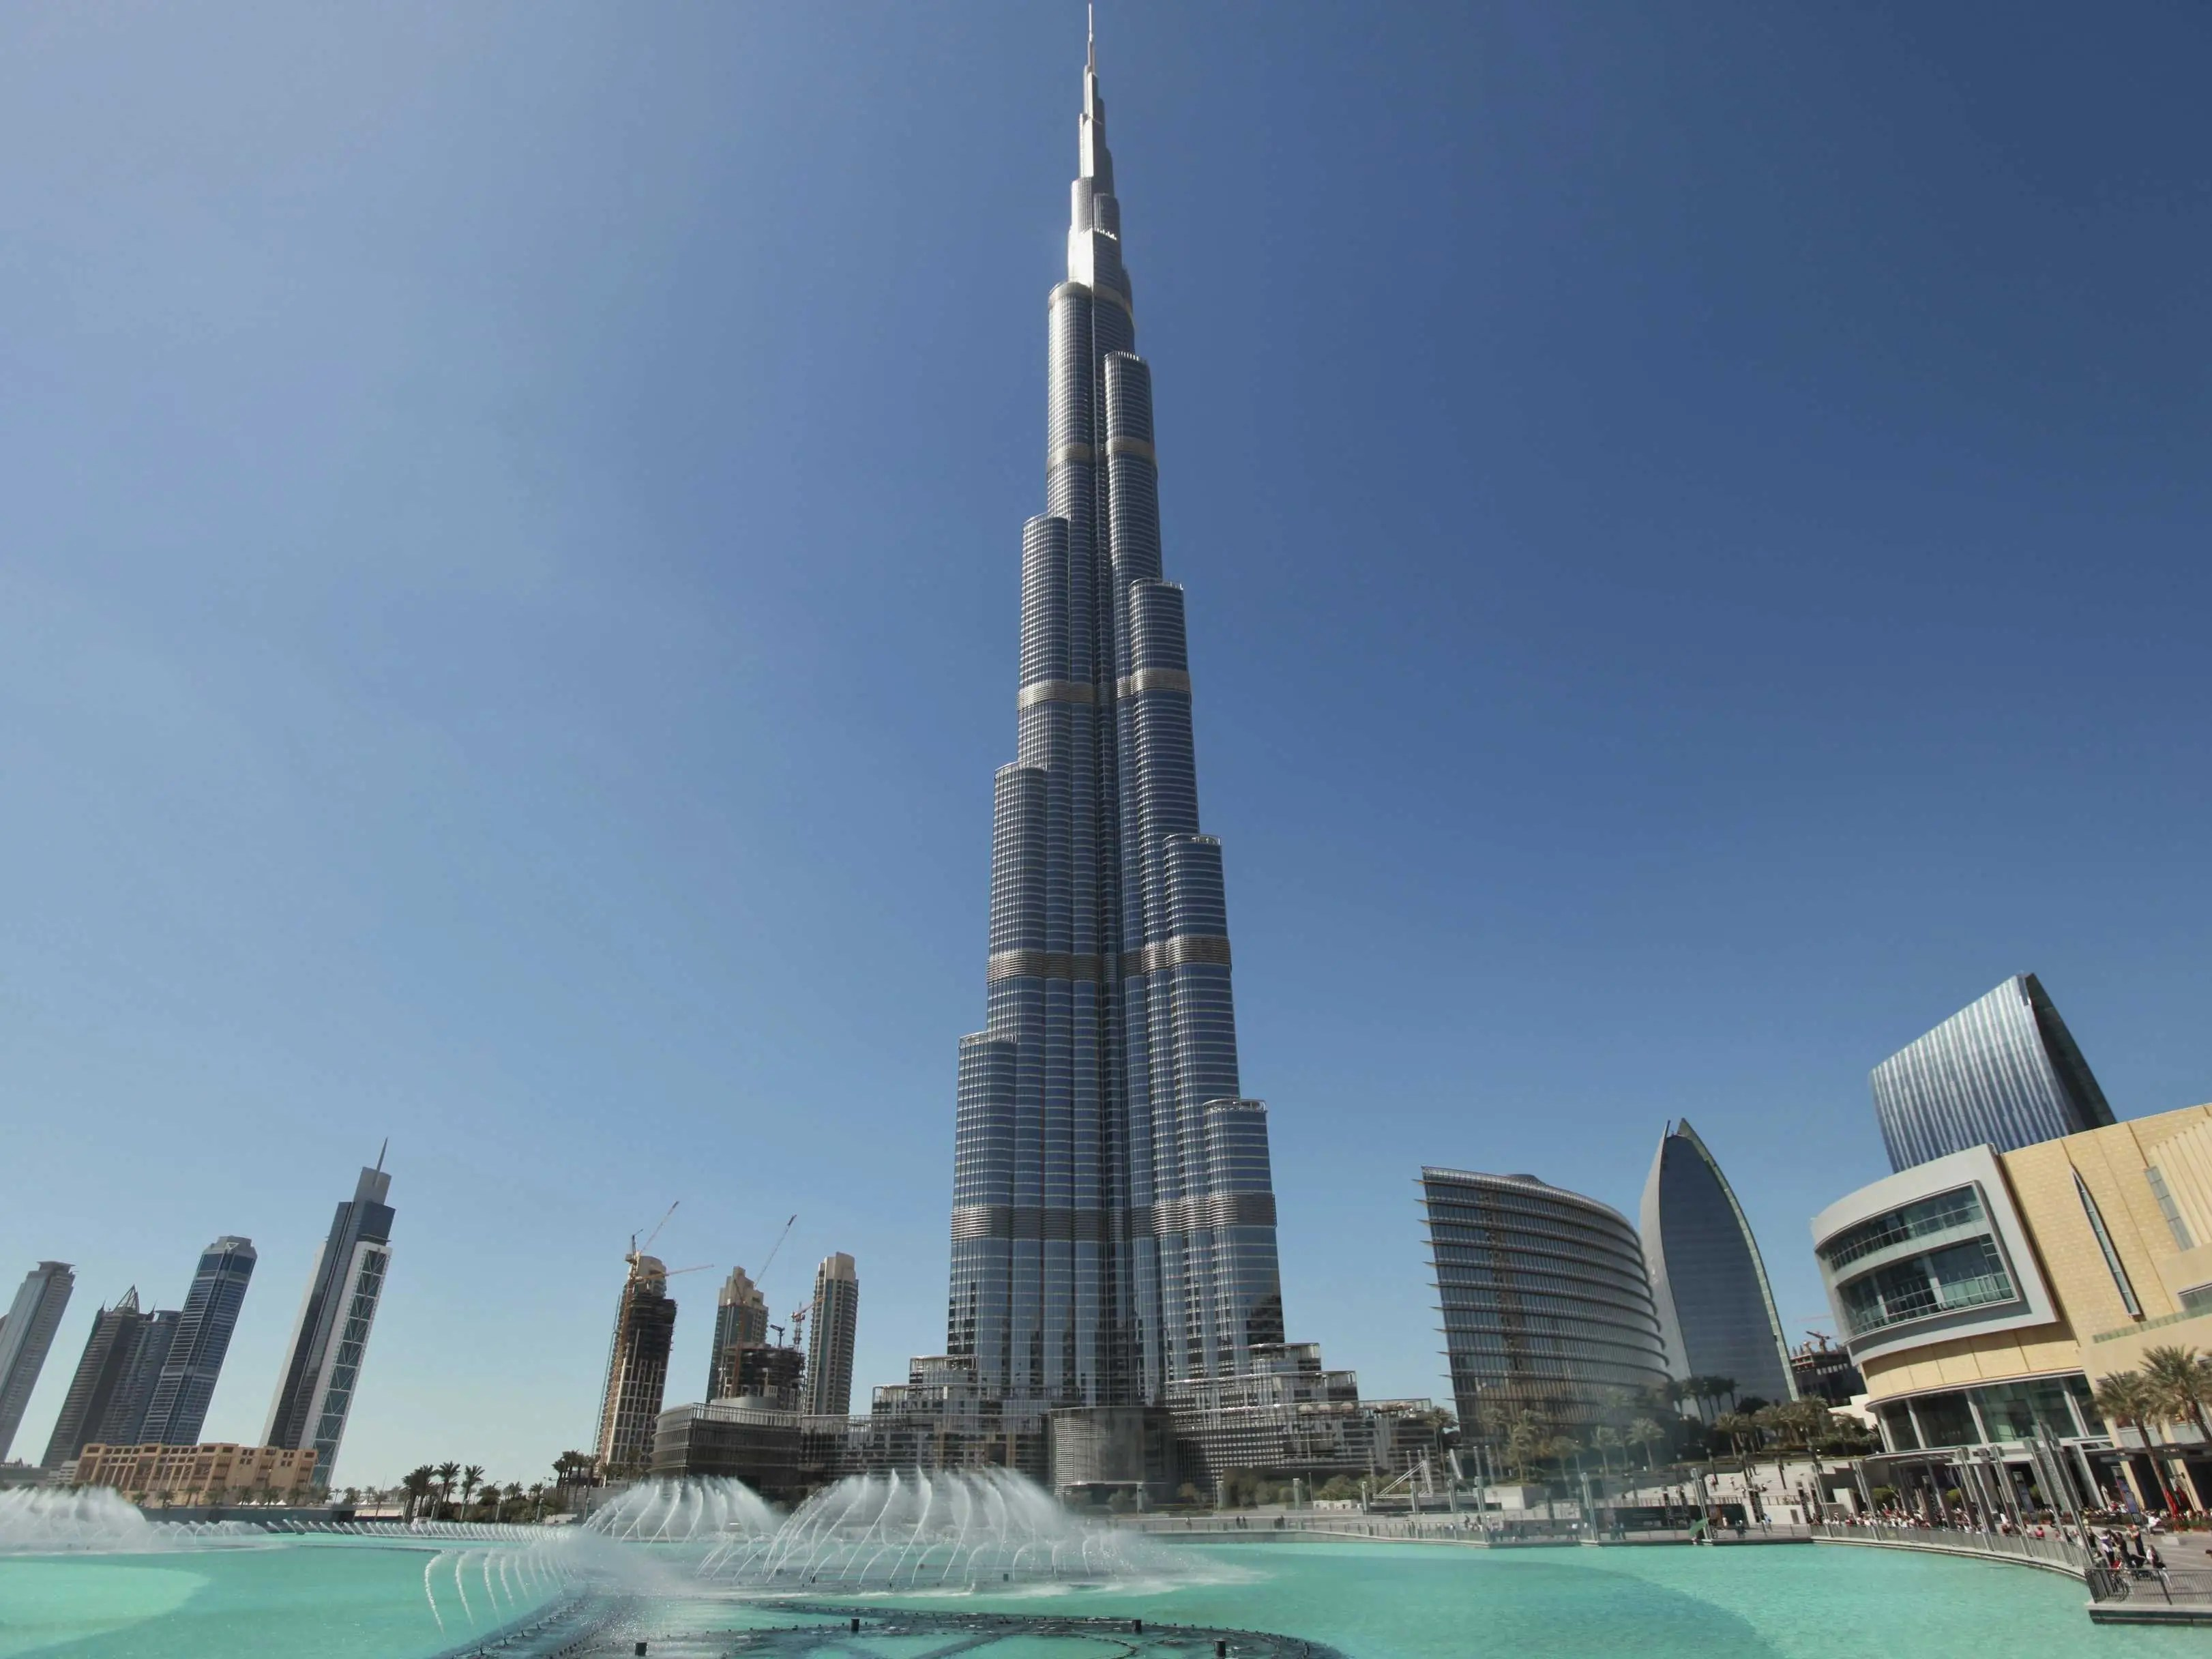 Take in the view from the observation deck of Dubai's Burj Khalifa, the world's tallest building.